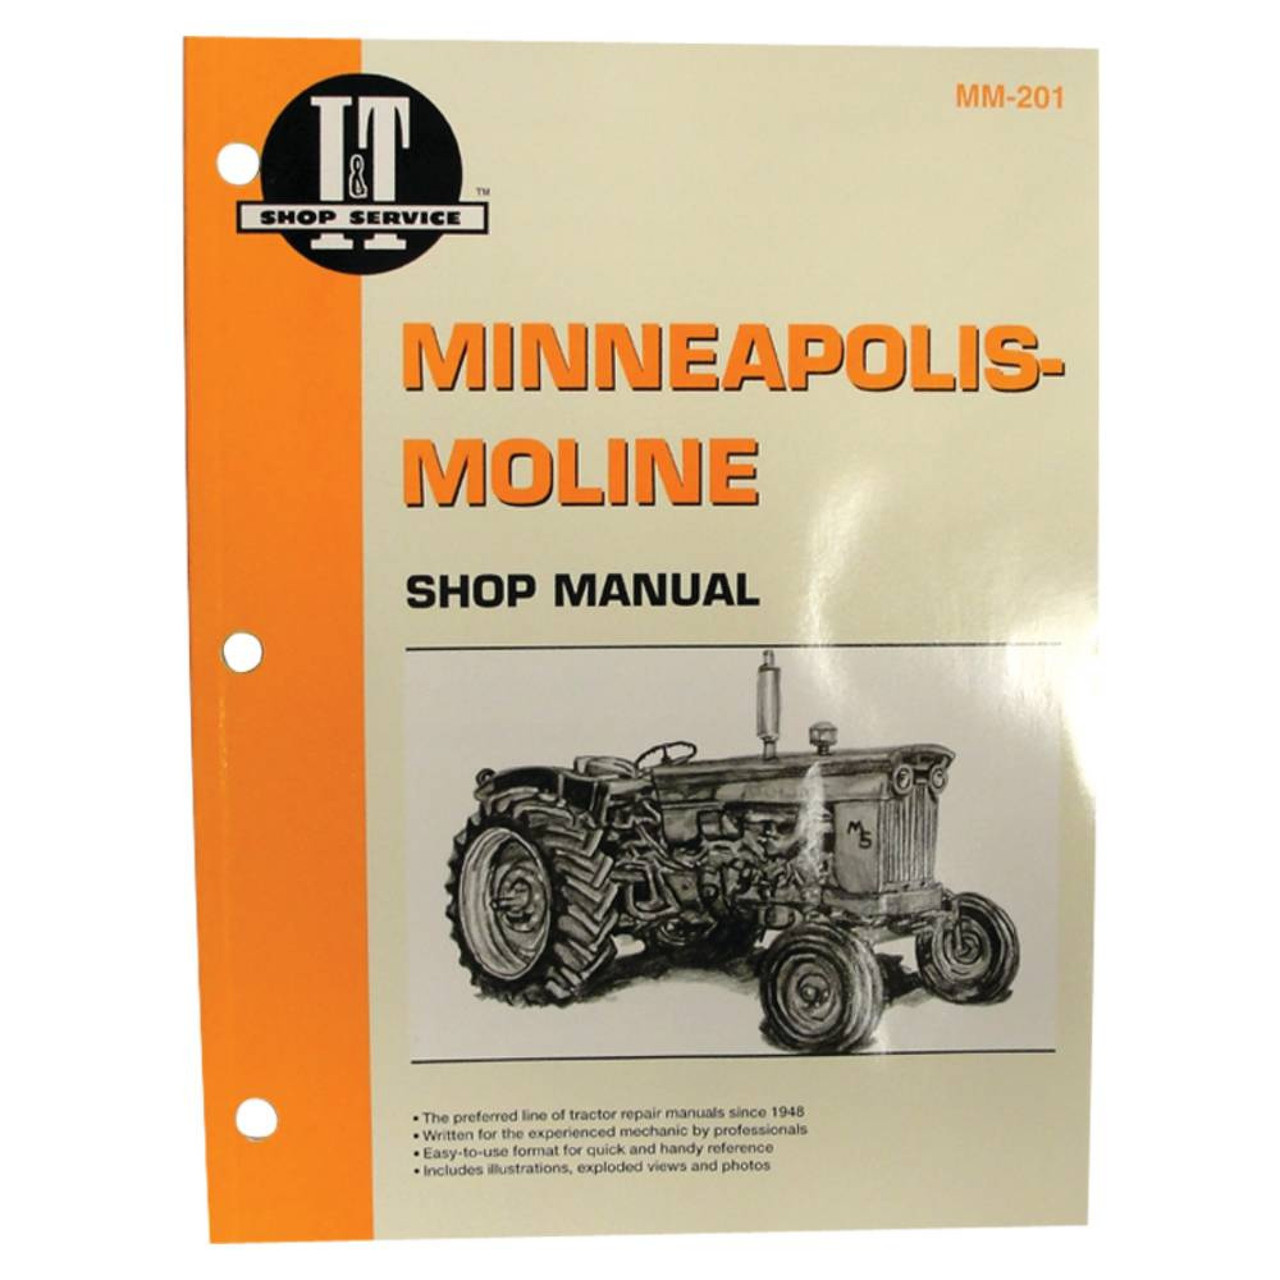 Service Manual for Minneapolis-Moline Tractor MM201 335, 4 5 STAR , 445 -  Complete Tractor